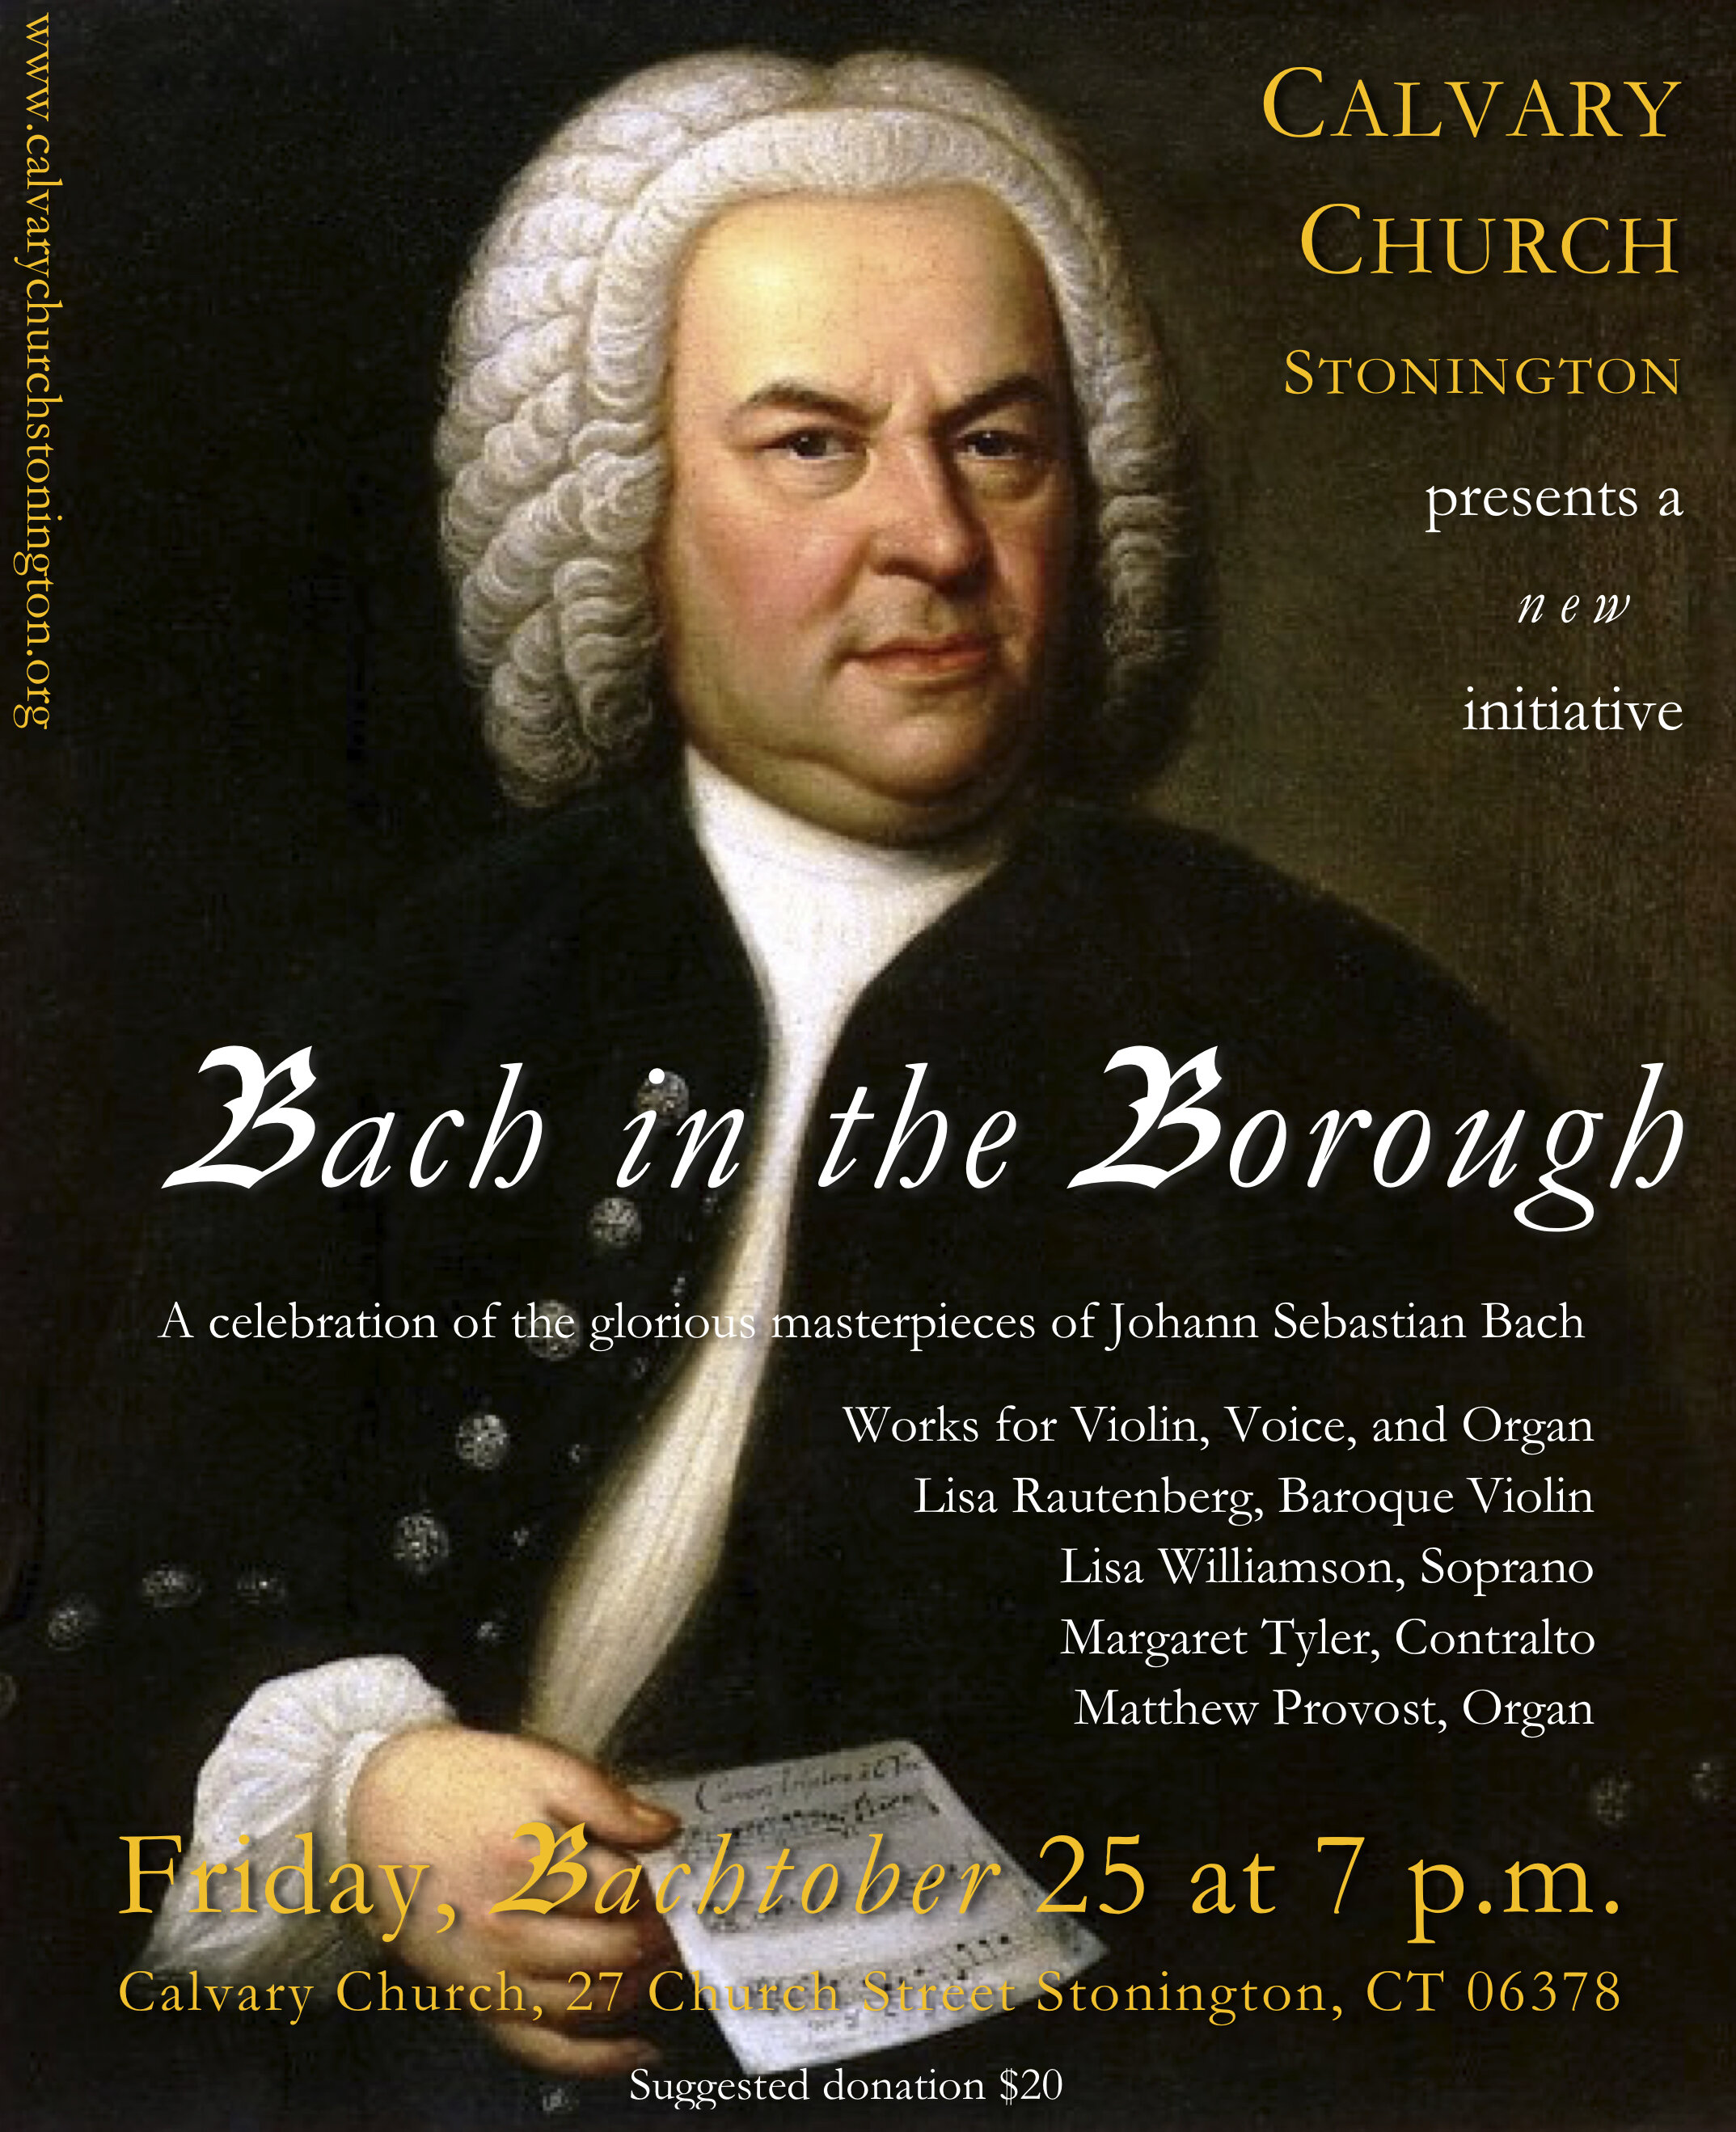 CC - Bach in the Borough - for PRESS PACKAGE (2).jpg